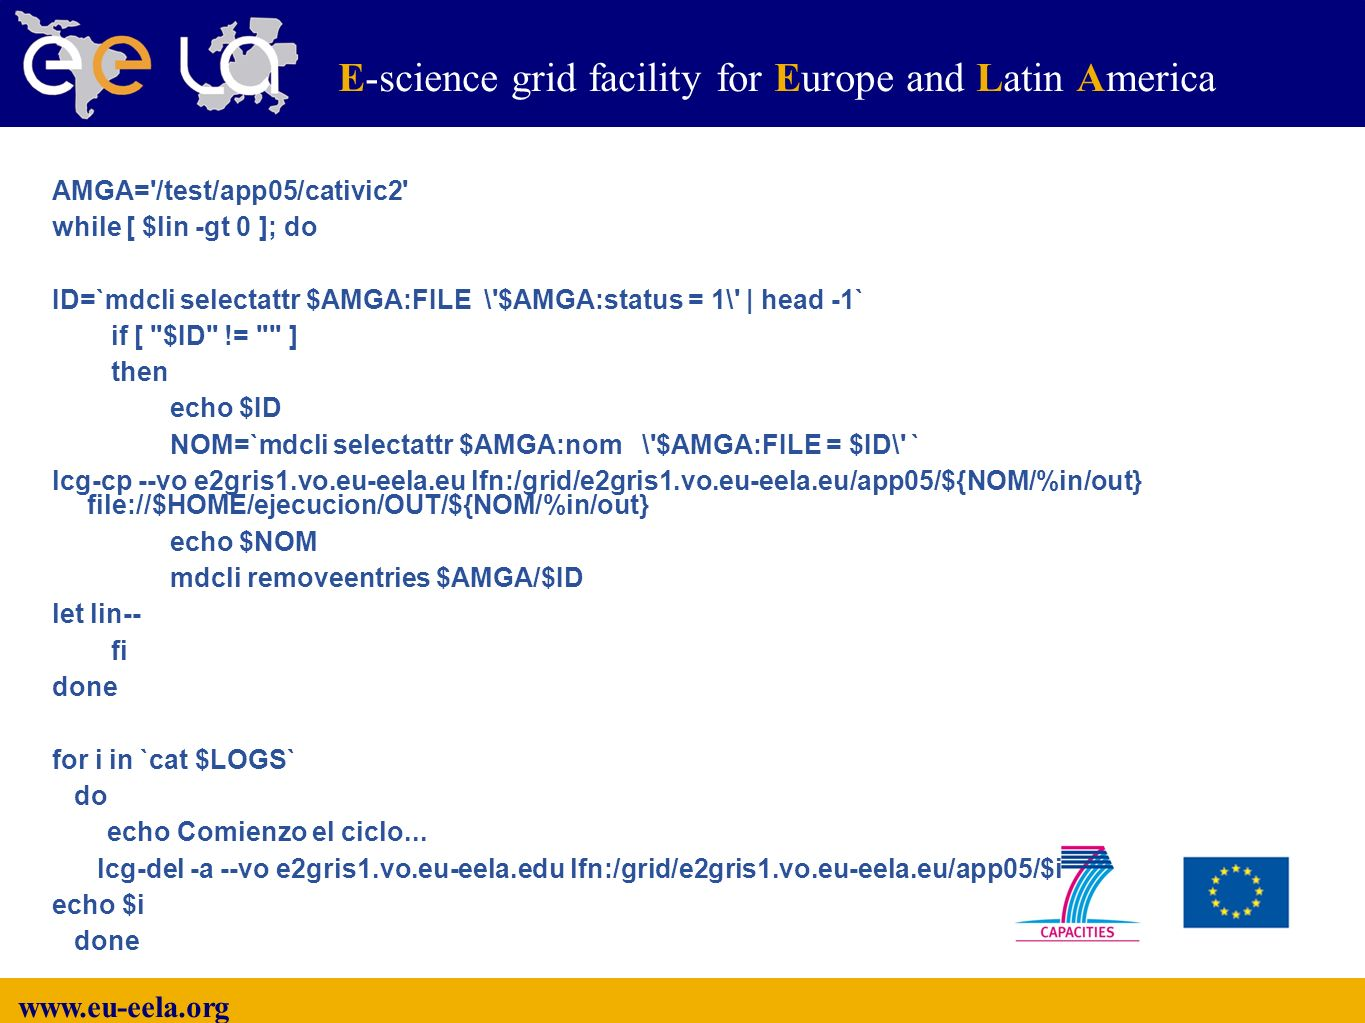 www.eu-eela.org E-science grid facility for Europe and Latin America AMGA= /test/app05/cativic2 while [ $lin -gt 0 ]; do ID=`mdcli selectattr $AMGA:FILE \ $AMGA:status = 1\ | head -1` if [ $ID != ] then echo $ID NOM=`mdcli selectattr $AMGA:nom \ $AMGA:FILE = $ID\ ` lcg-cp --vo e2gris1.vo.eu-eela.eu lfn:/grid/e2gris1.vo.eu-eela.eu/app05/${NOM/%in/out} file://$HOME/ejecucion/OUT/${NOM/%in/out} echo $NOM mdcli removeentries $AMGA/$ID let lin-- fi done for i in `cat $LOGS` do echo Comienzo el ciclo...